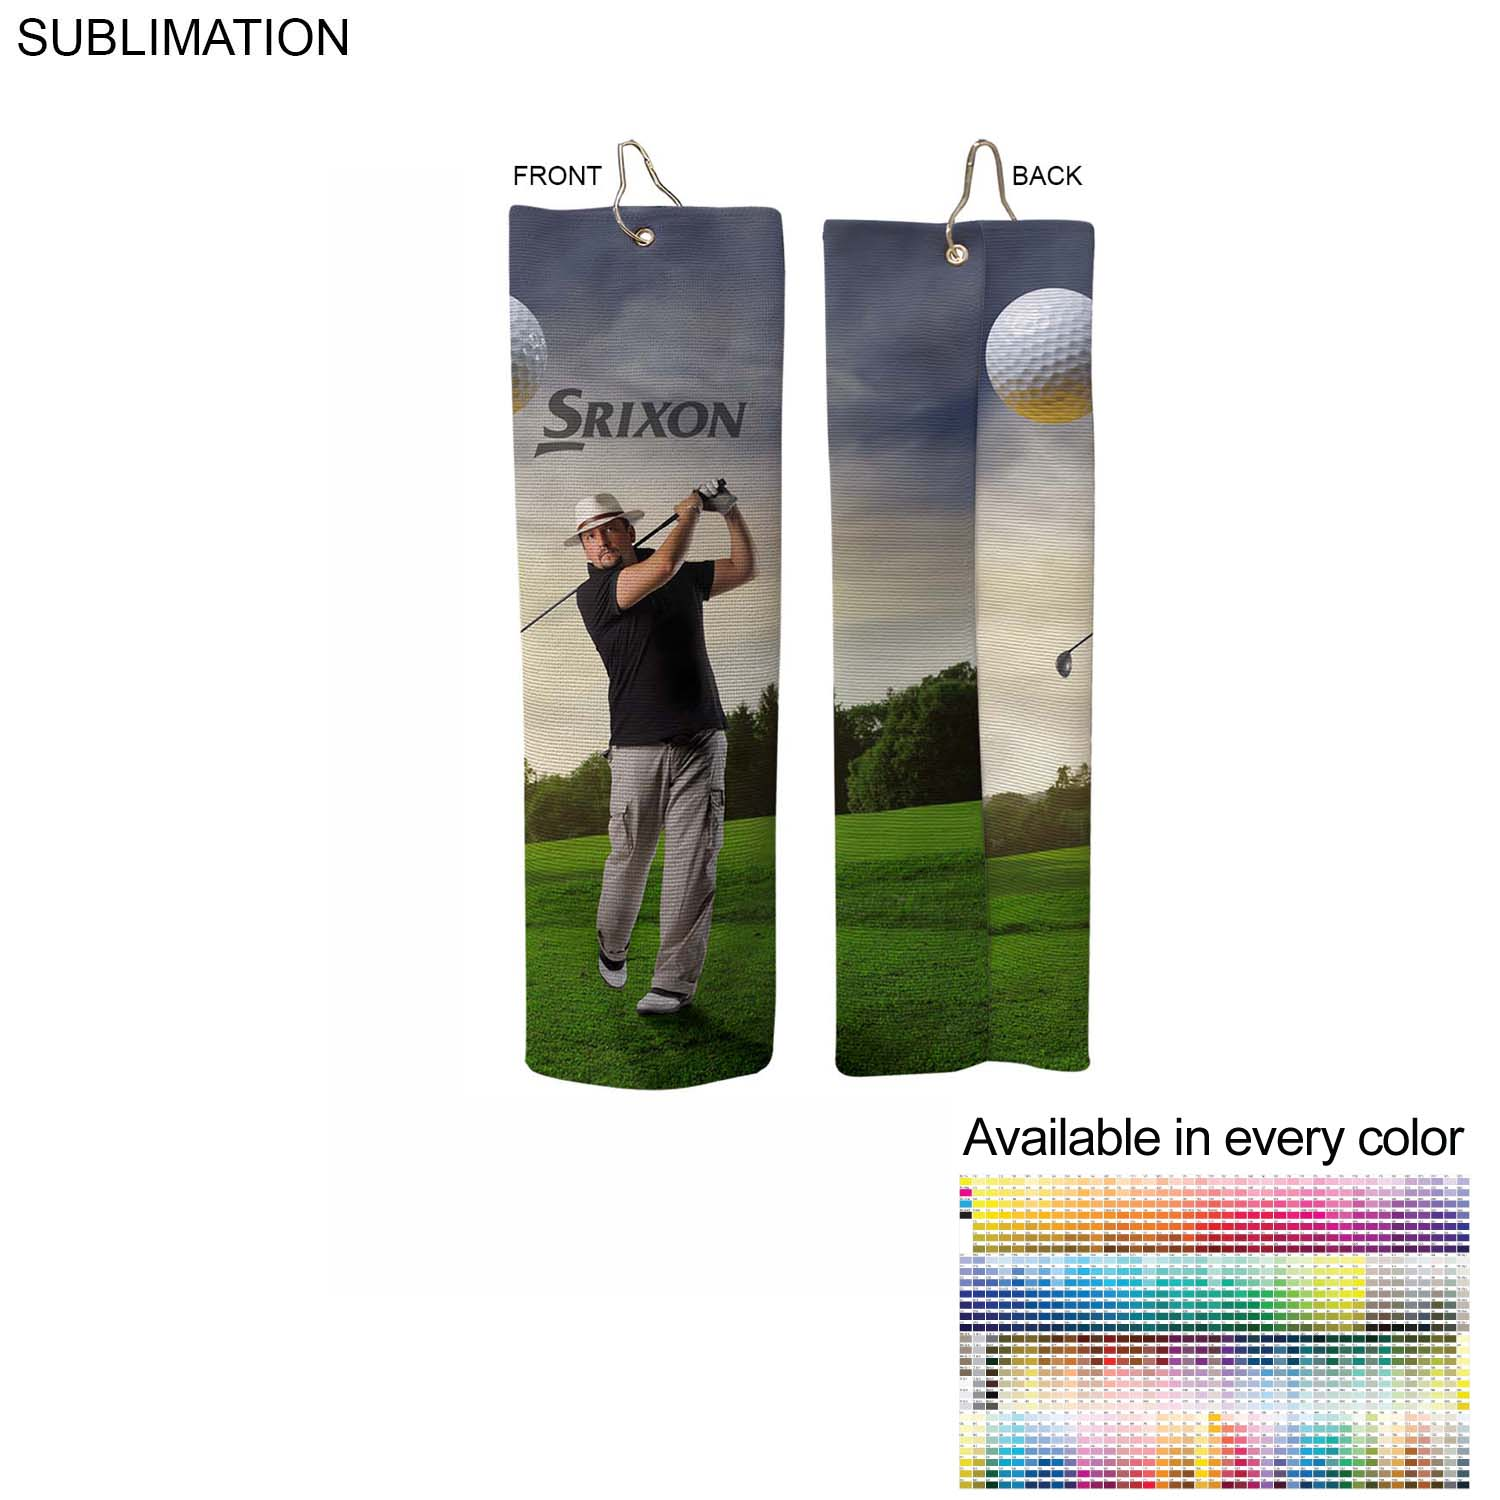 Sublimated Microfiber Terry Trifolded Golf Towel, 5x18 - Full Colour Imprint (#SU178)